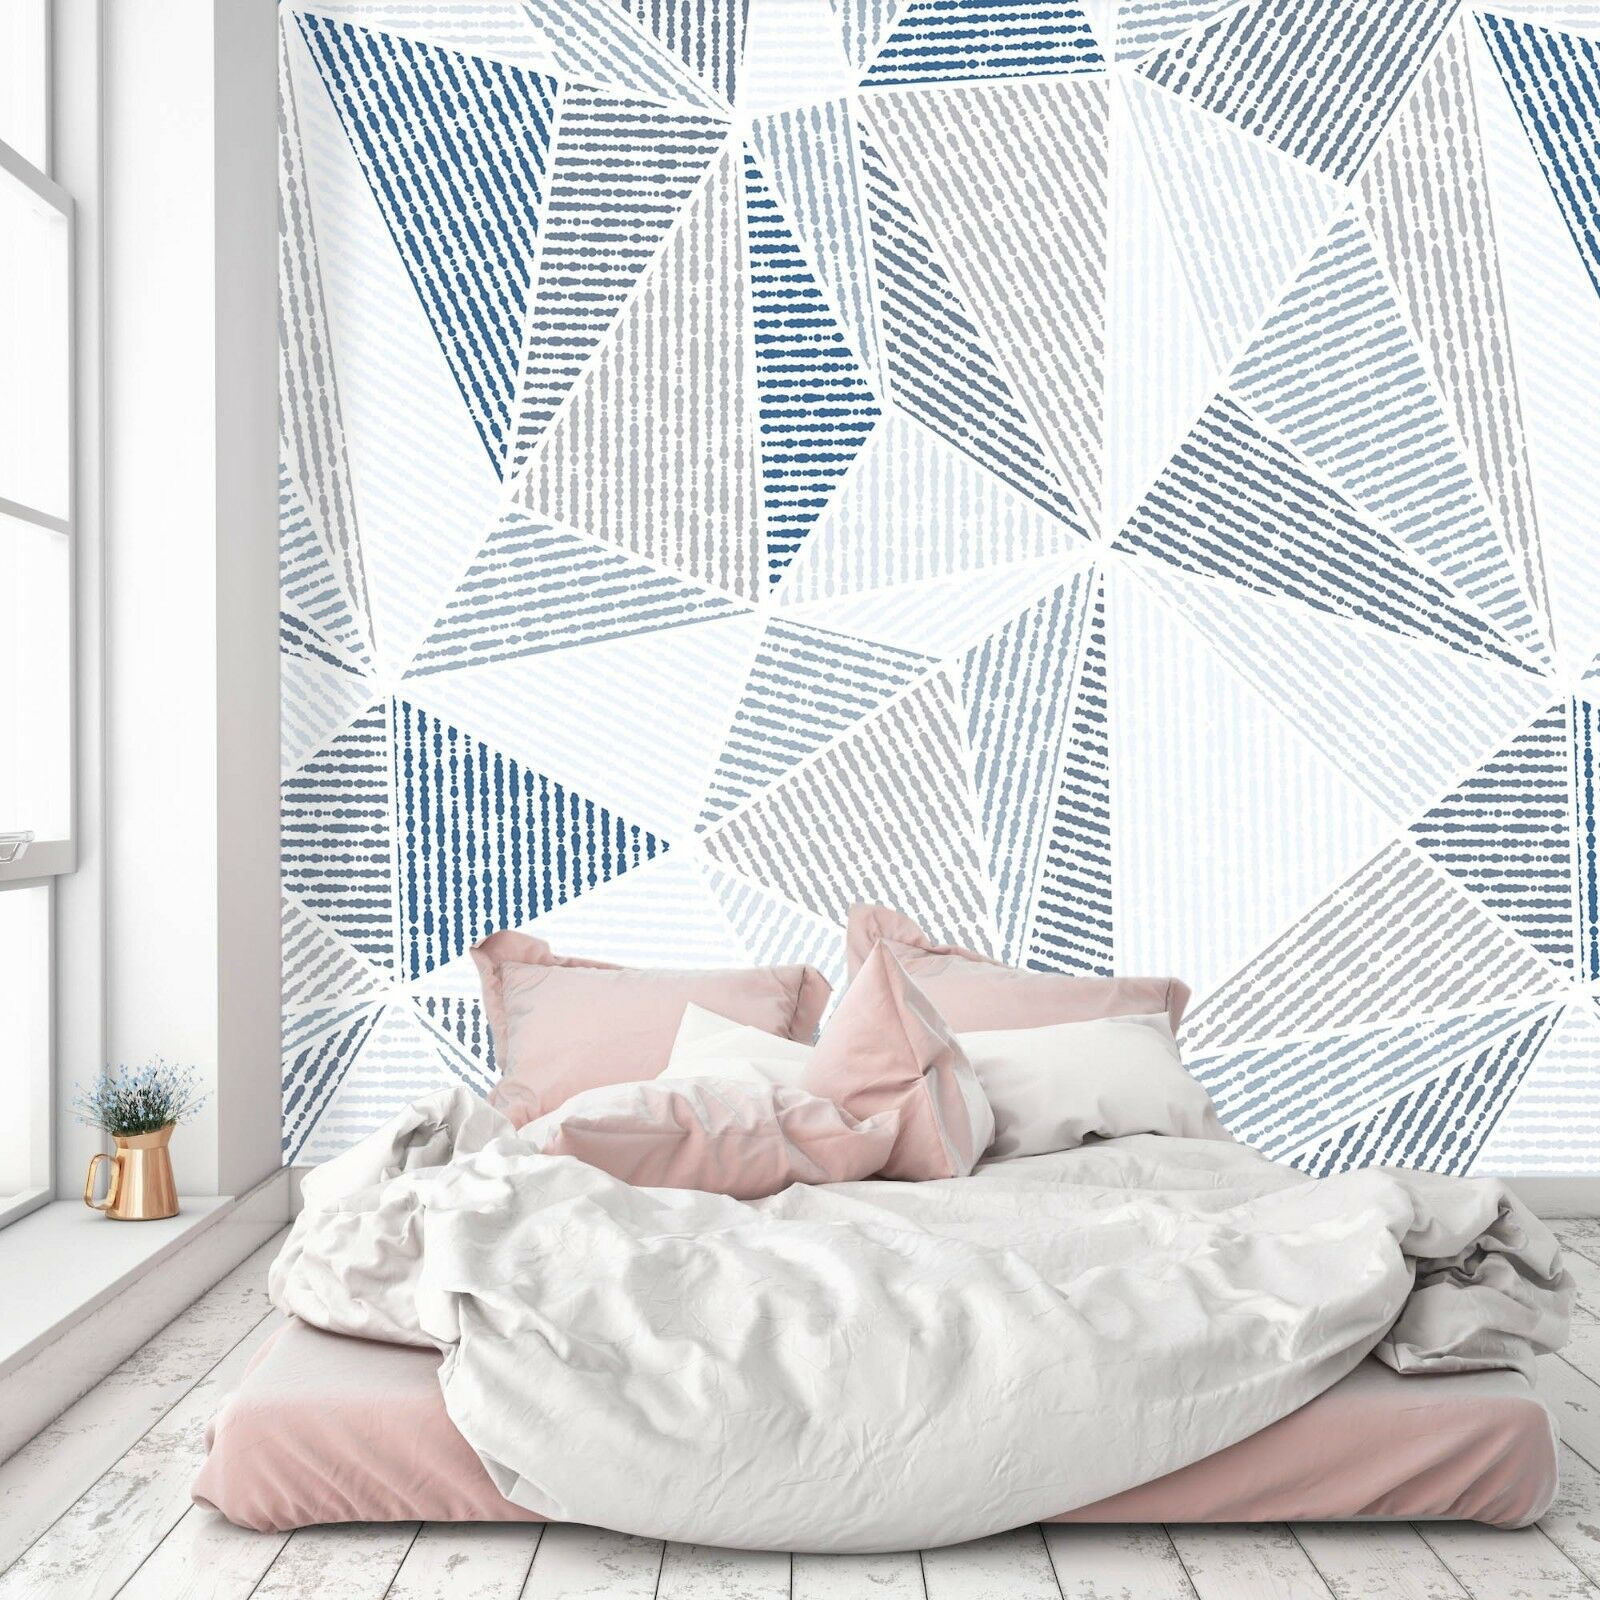 3D White Triangle 733 Wall Paper Exclusive MXY Wallpaper Mural Decal Indoor Wall